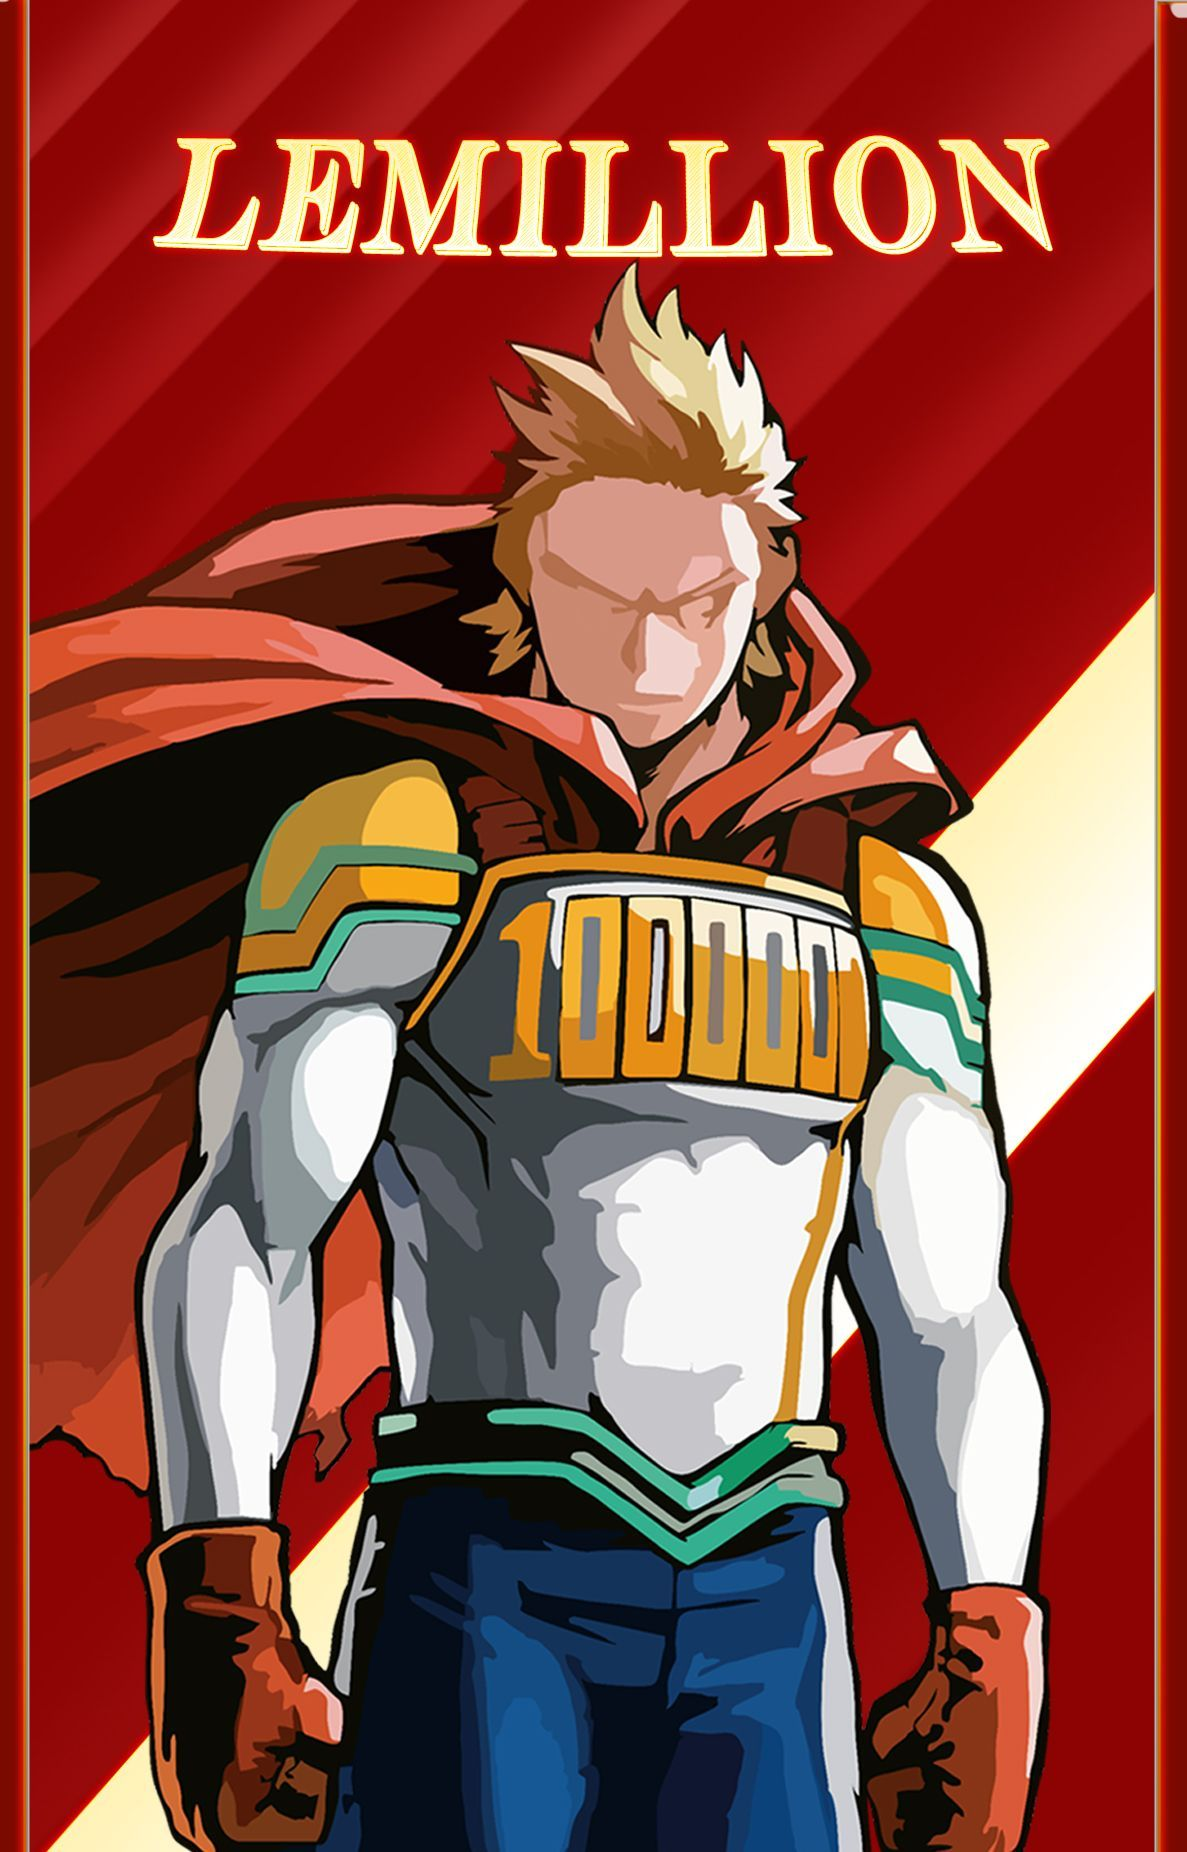 ヒーローLemillion in 2020 My hero academia episodes, Hero